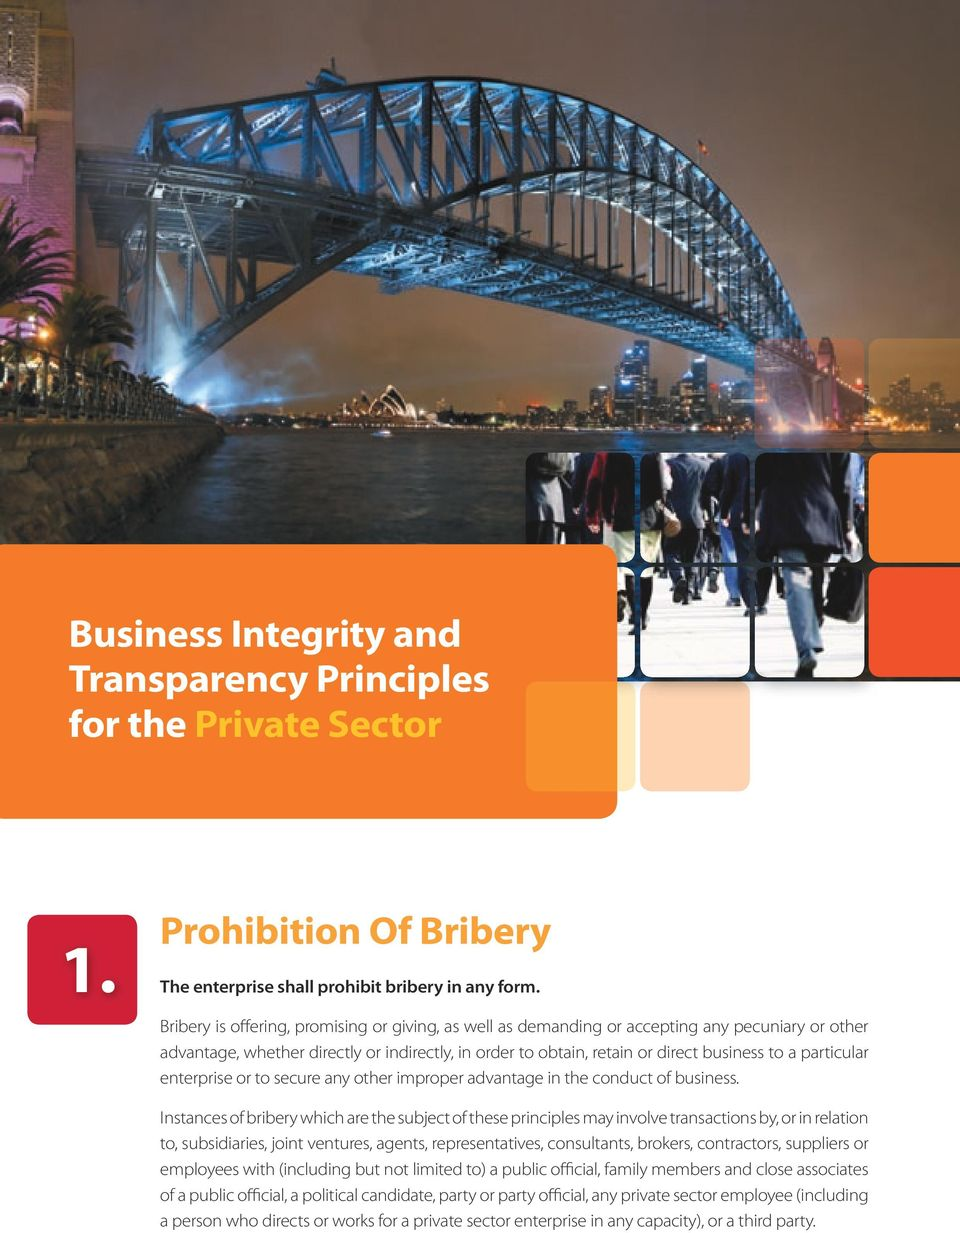 particular enterprise or to secure any other improper advantage in the conduct of business.